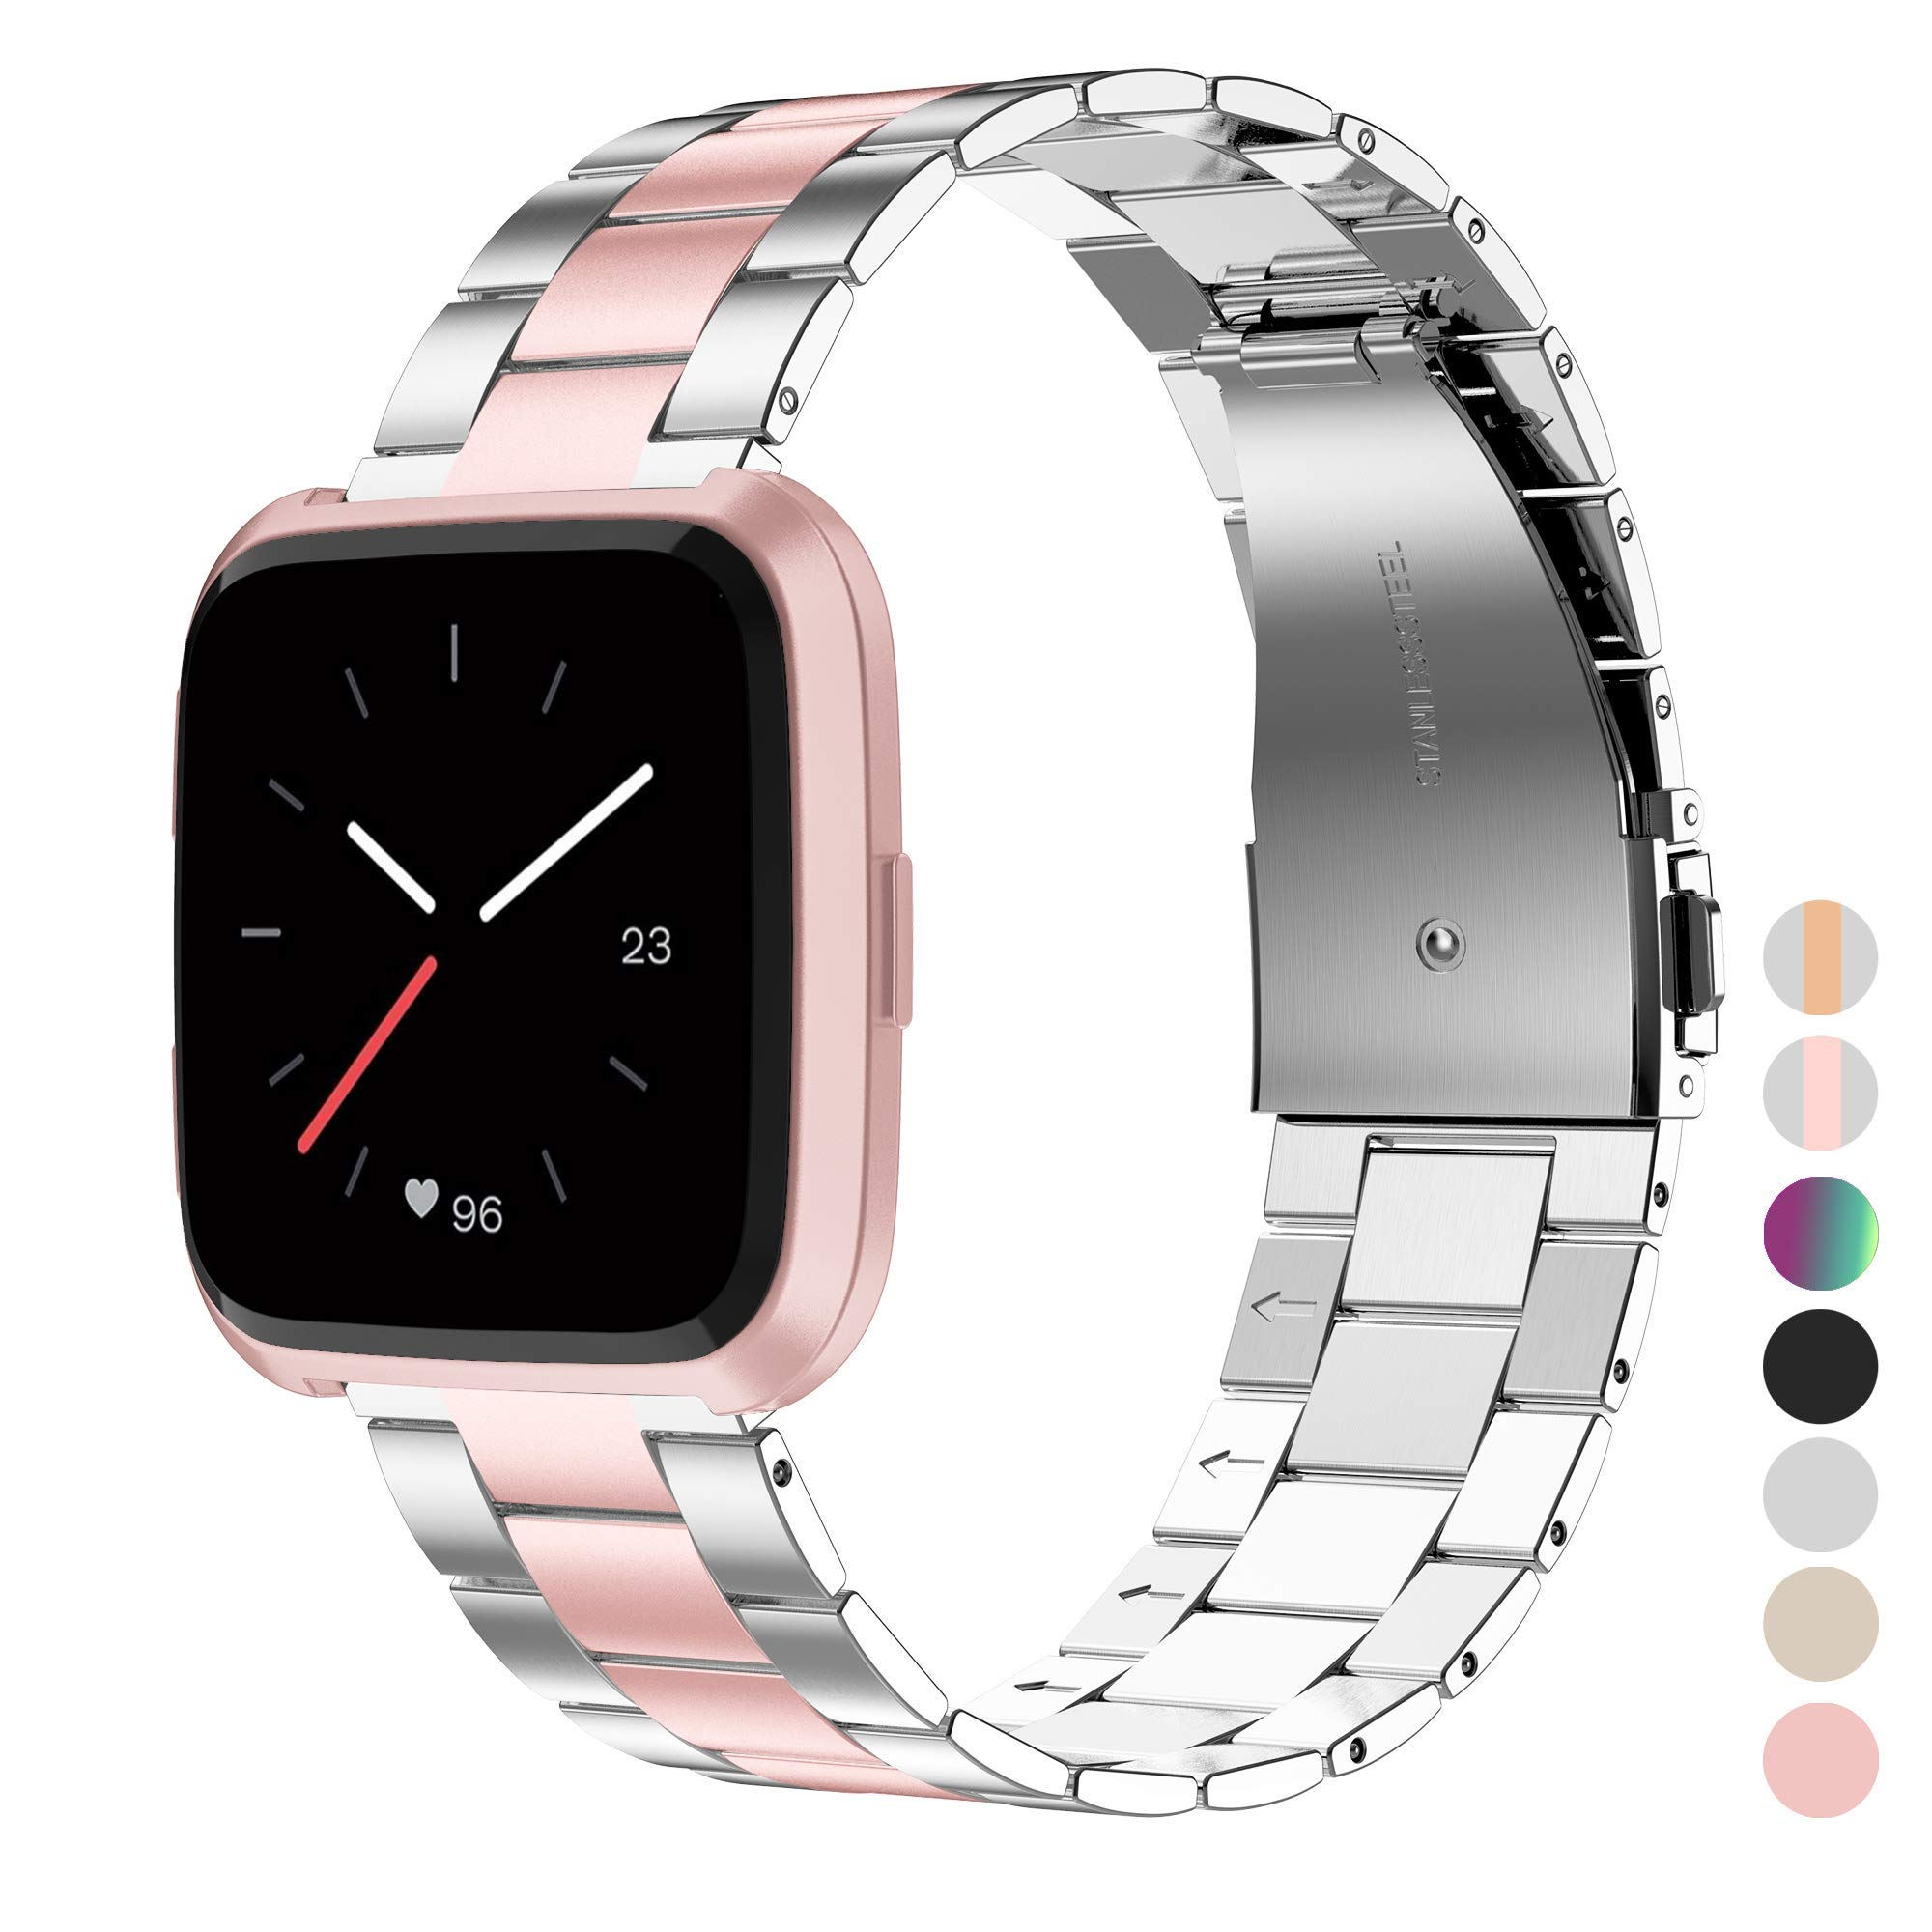 Wearlizer Stainless Steel Band Compatible for Fitbit Versa/Fitbit Versa Lite Bands Women Men,Ultra-Thin Lightweight Replacement Band Strap Bracelet Compatible for Fitbit Versa (Rosegold+Silver)